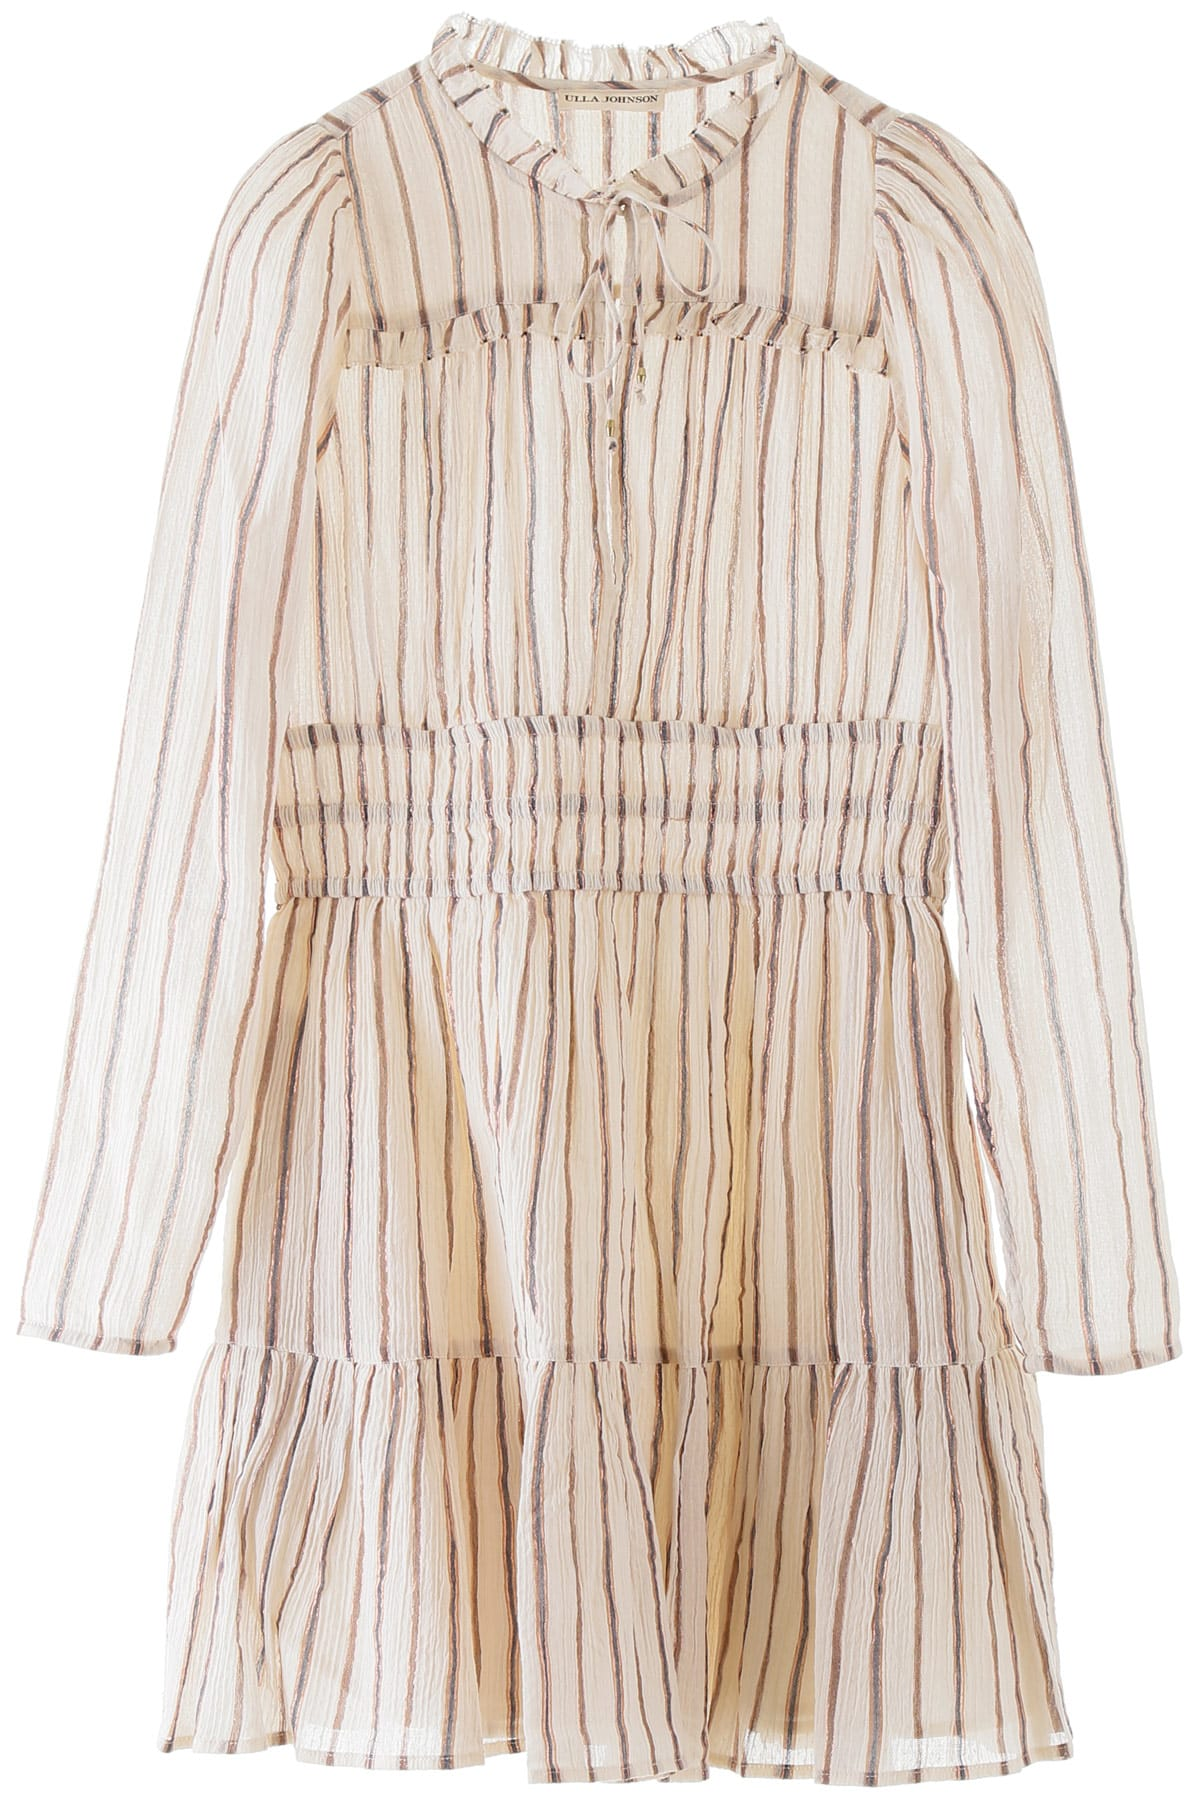 Buy Ulla Johnson Rosalind Striped Dress online, shop Ulla Johnson with free shipping